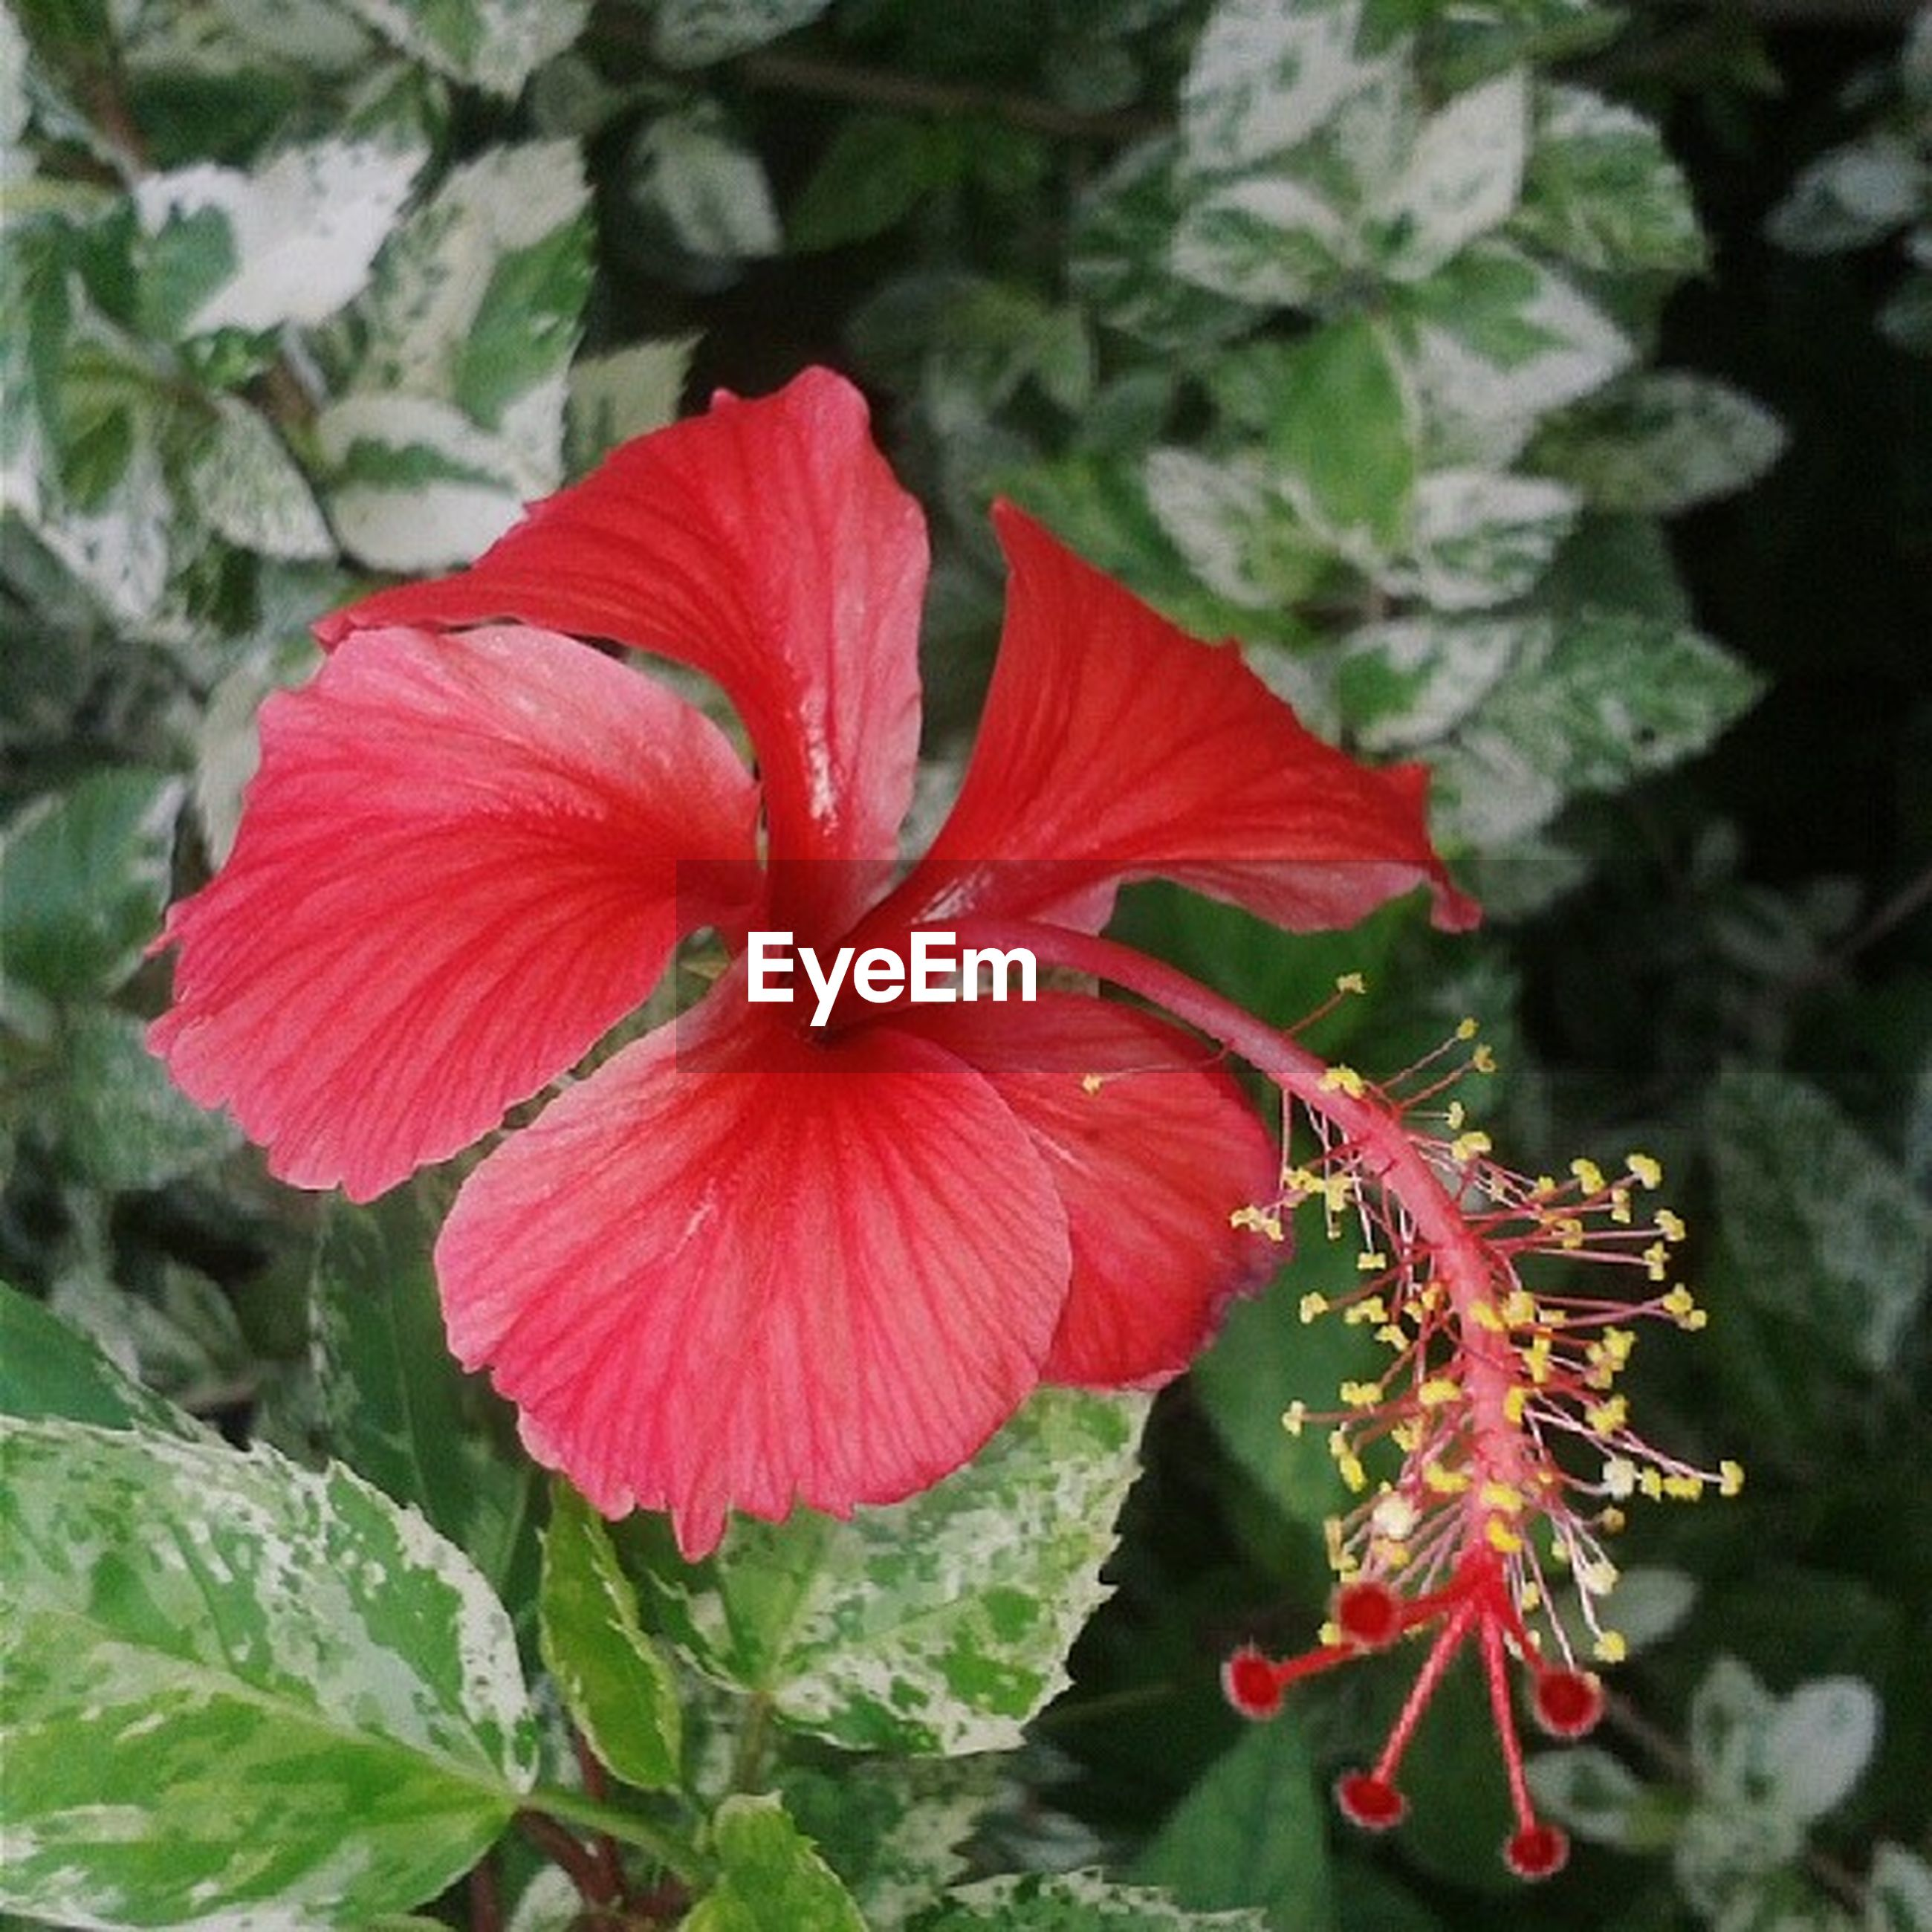 flower, petal, freshness, flower head, red, fragility, growth, beauty in nature, blooming, plant, close-up, nature, focus on foreground, pollen, single flower, in bloom, stamen, hibiscus, leaf, park - man made space